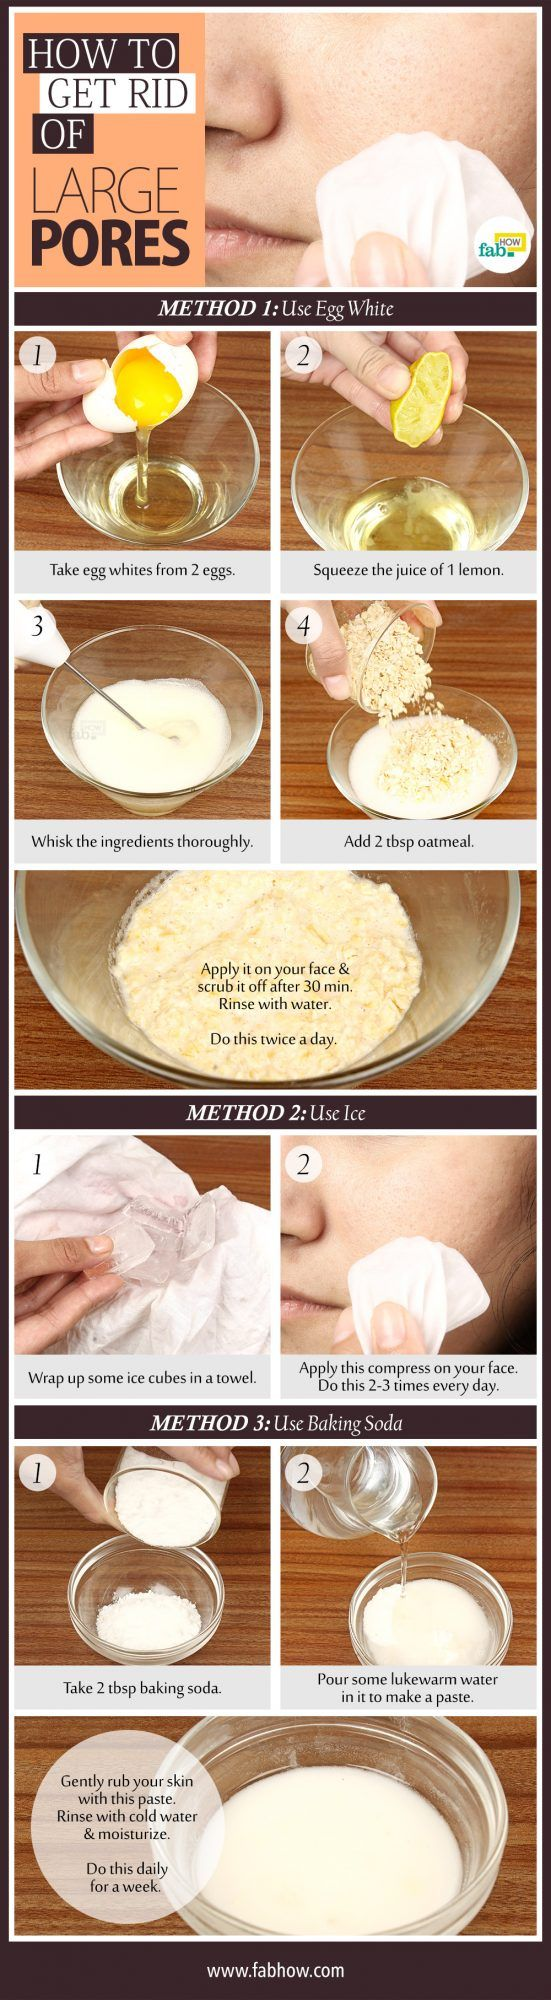 Very Effective Home Remedy to Shrink and Tighten Large Open Pores Naturally